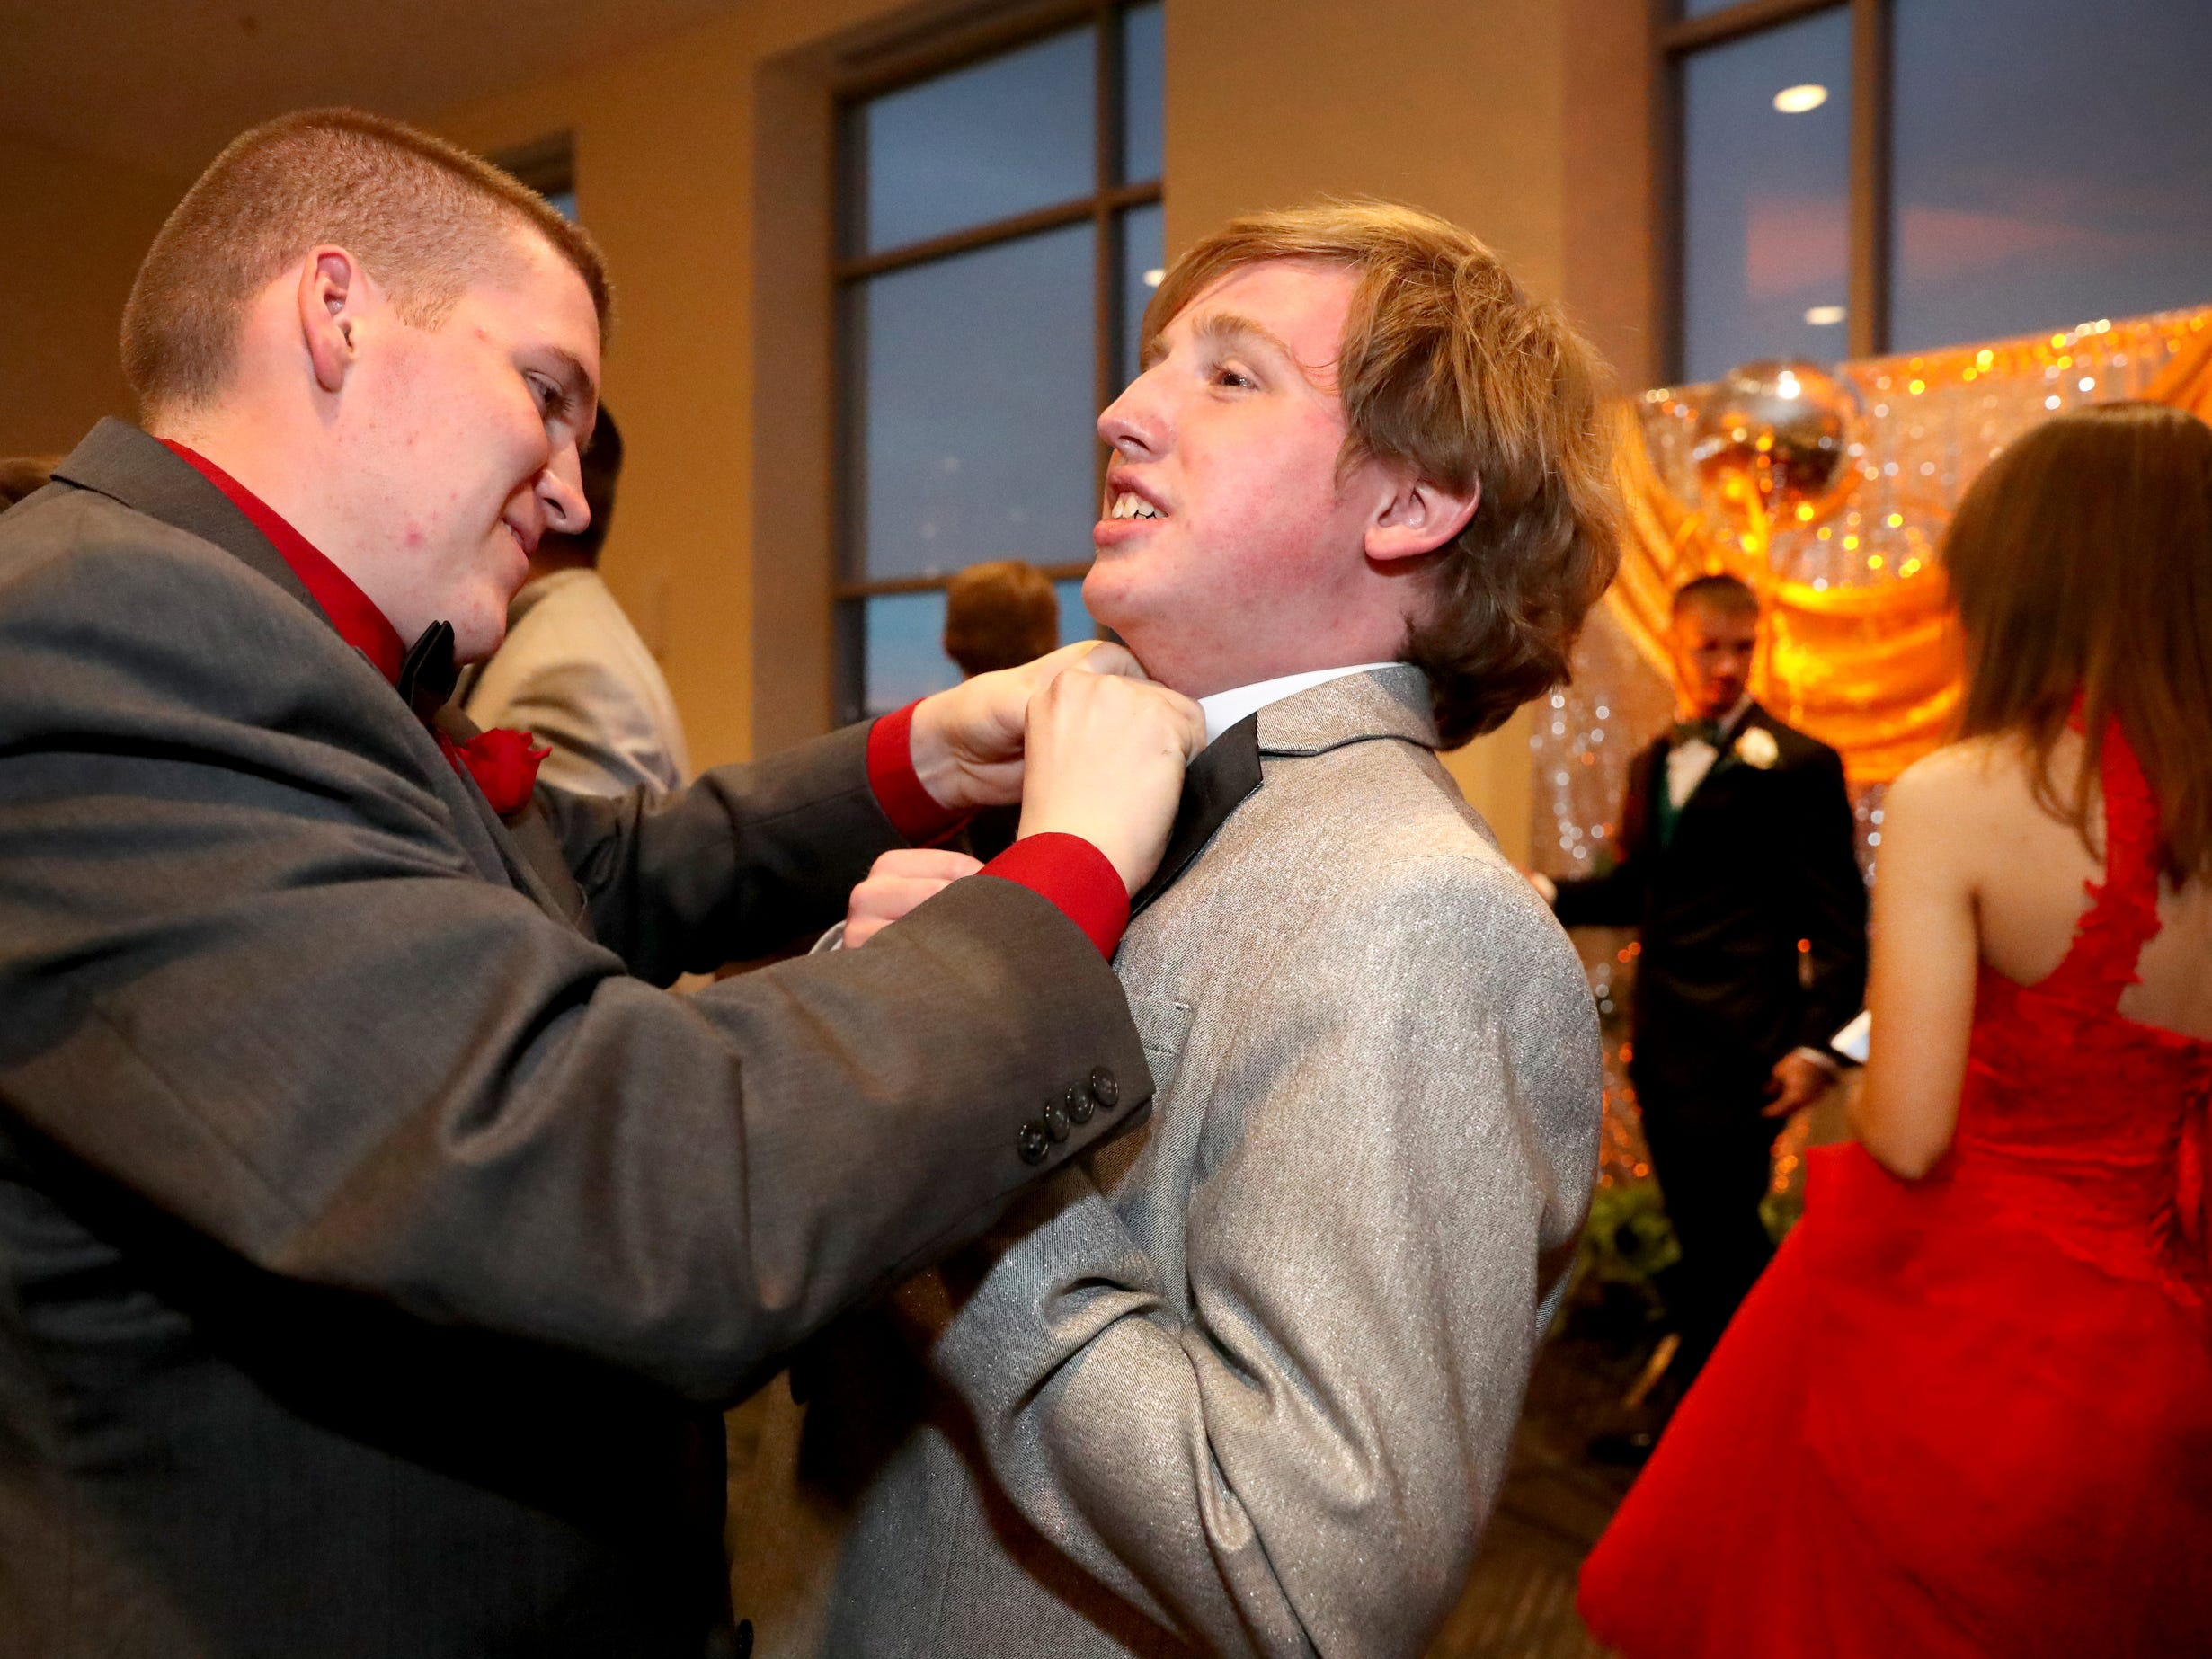 Allen Hoehne, left helps Benjamin Barnes with his tie at Blackman's prom on Friday April 12, 2019, at MTSU.